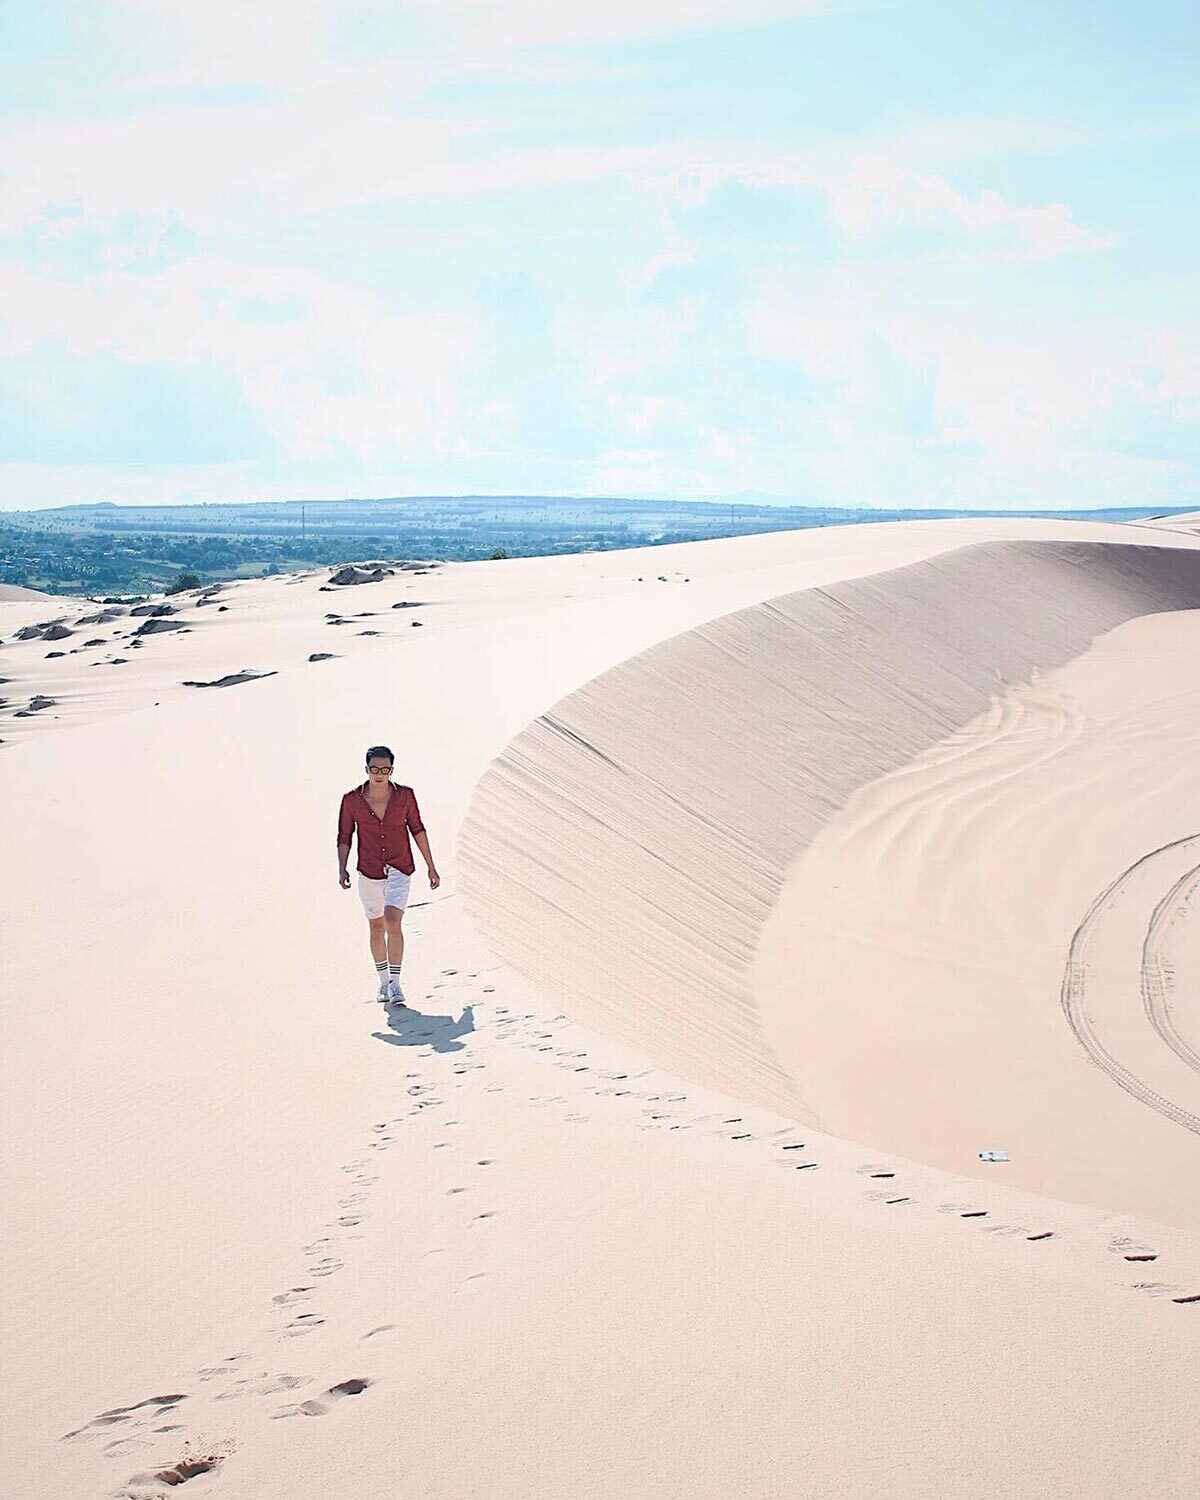 The sand dunes in Bau Trang are shaped by the wind from the sea into a desert-like hill. The tourists can walk on the sand dunes for sightseeing and taking photographs. Photo: Dang Duong